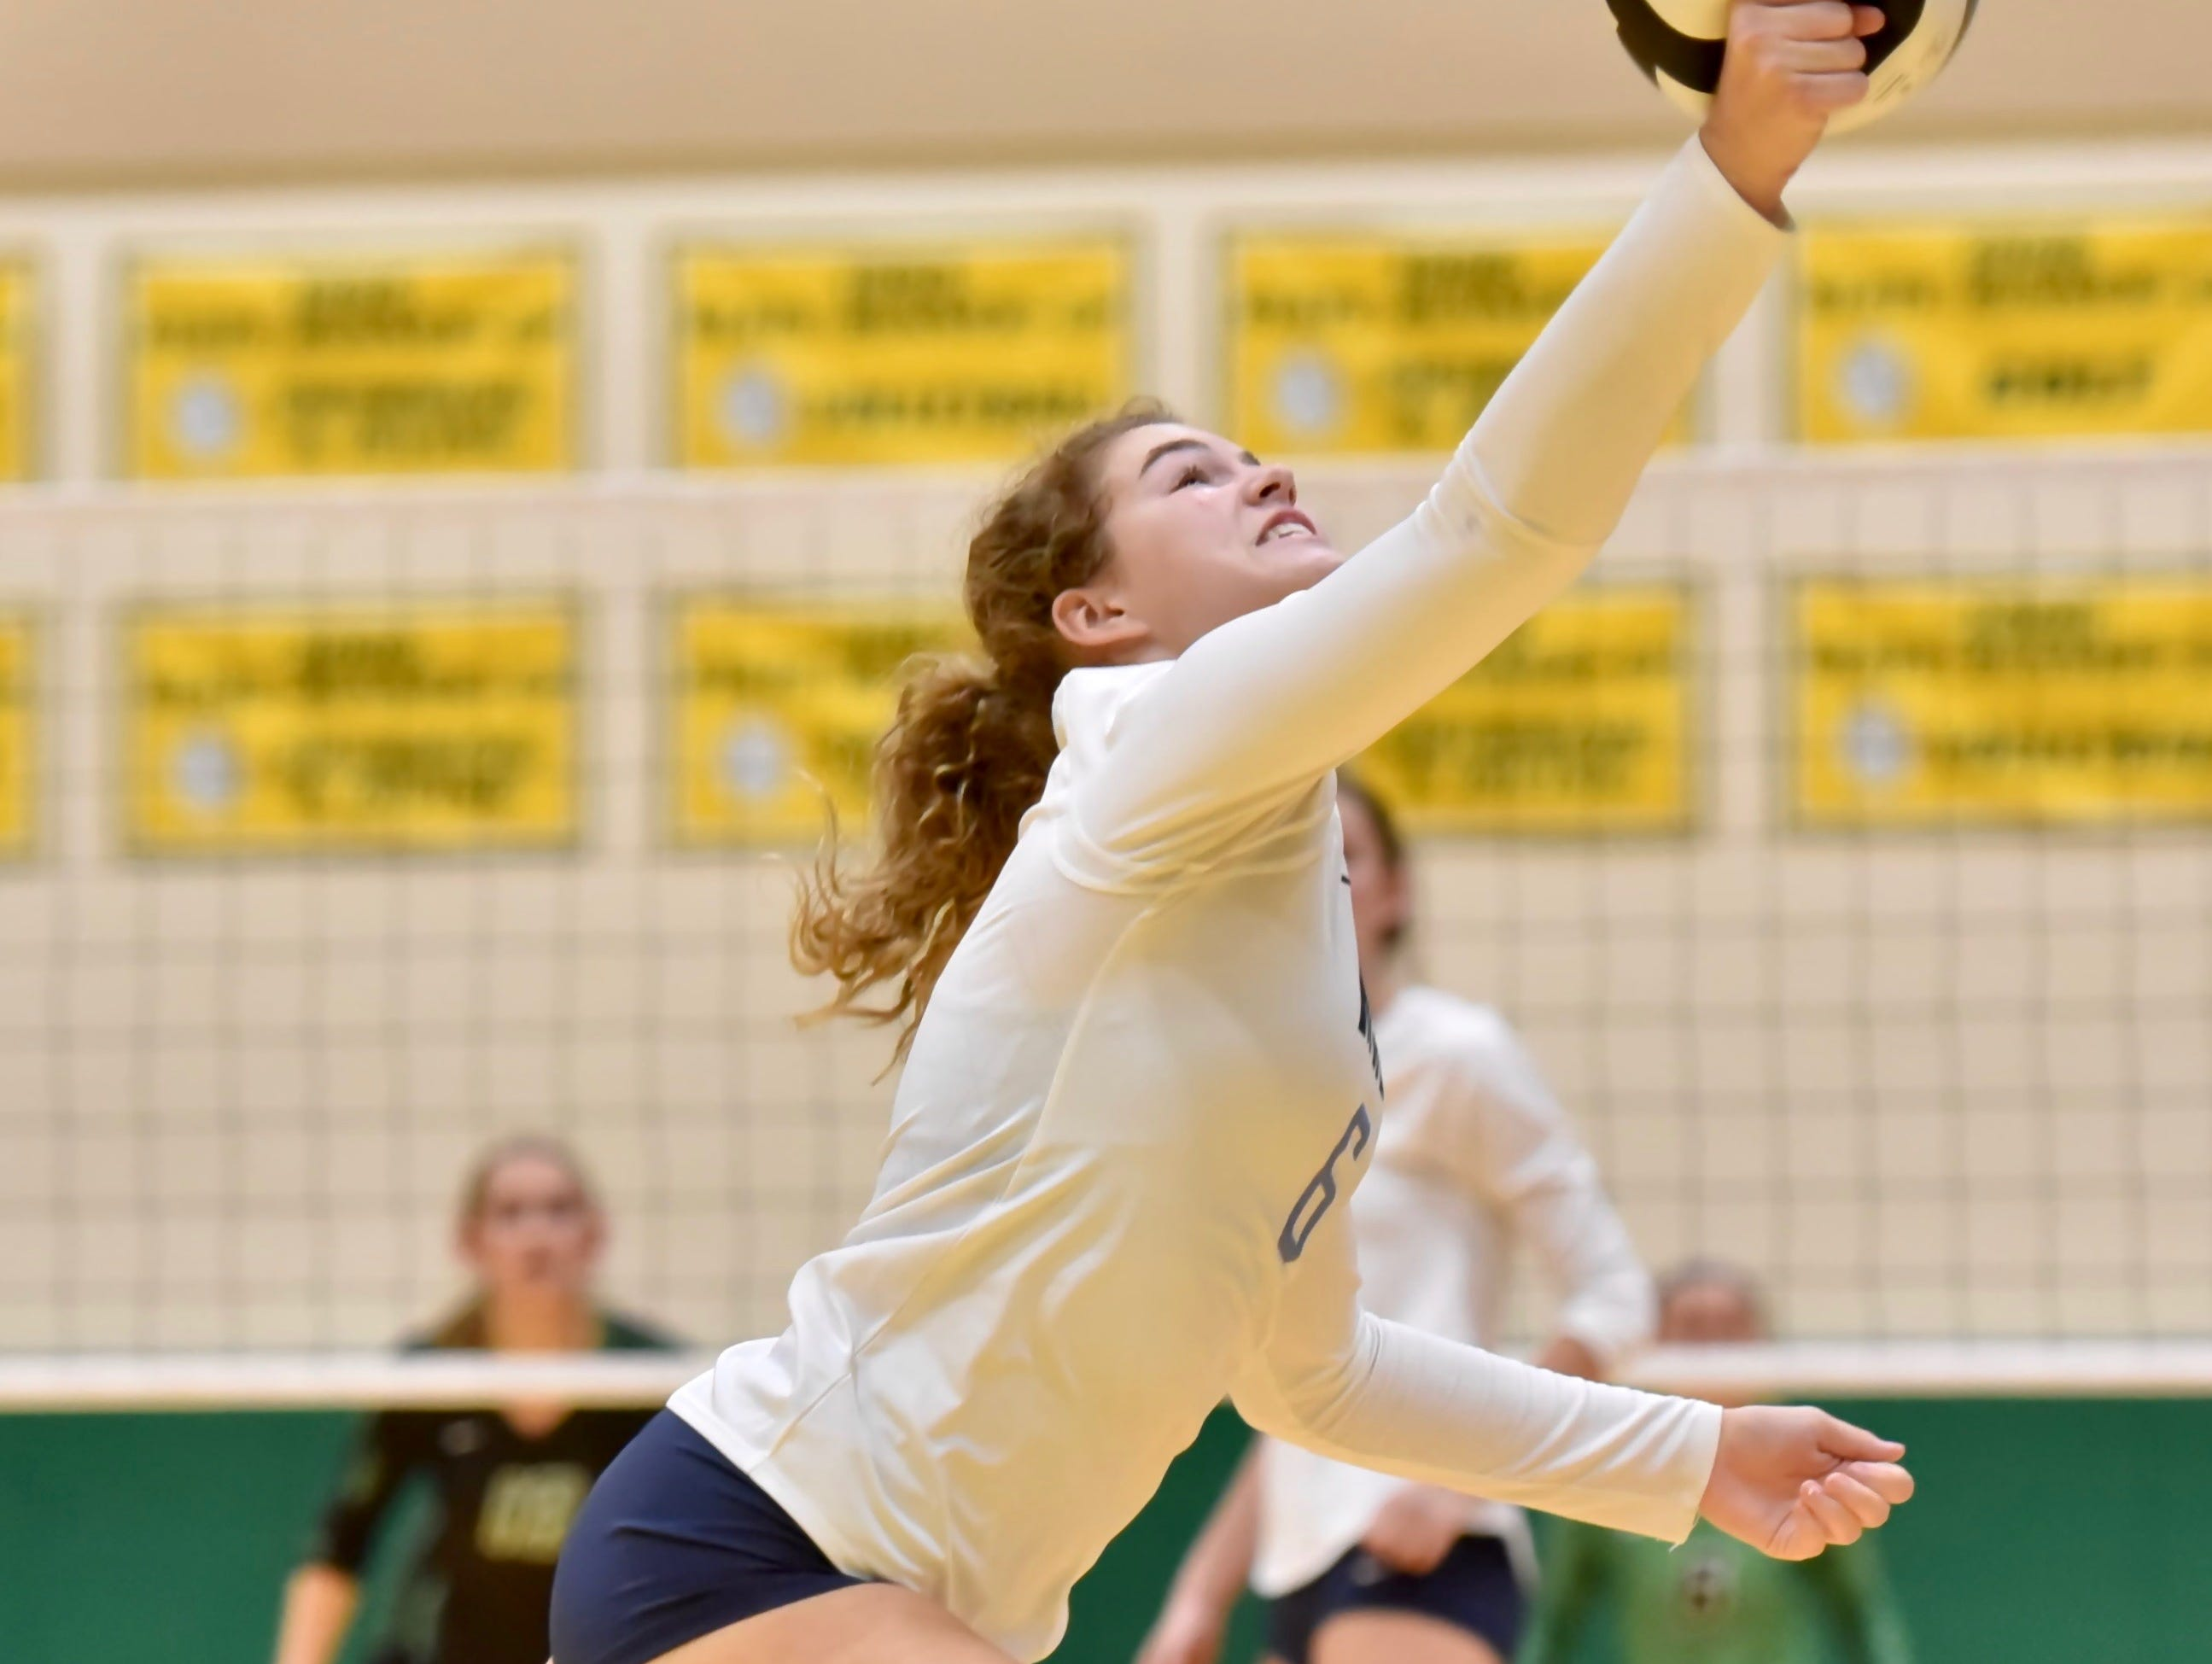 Mount Notre Dame's Ally Christman dives for a ball against Ursuline Tuesday, Sept. 11, 2018 at Ursuline Academy